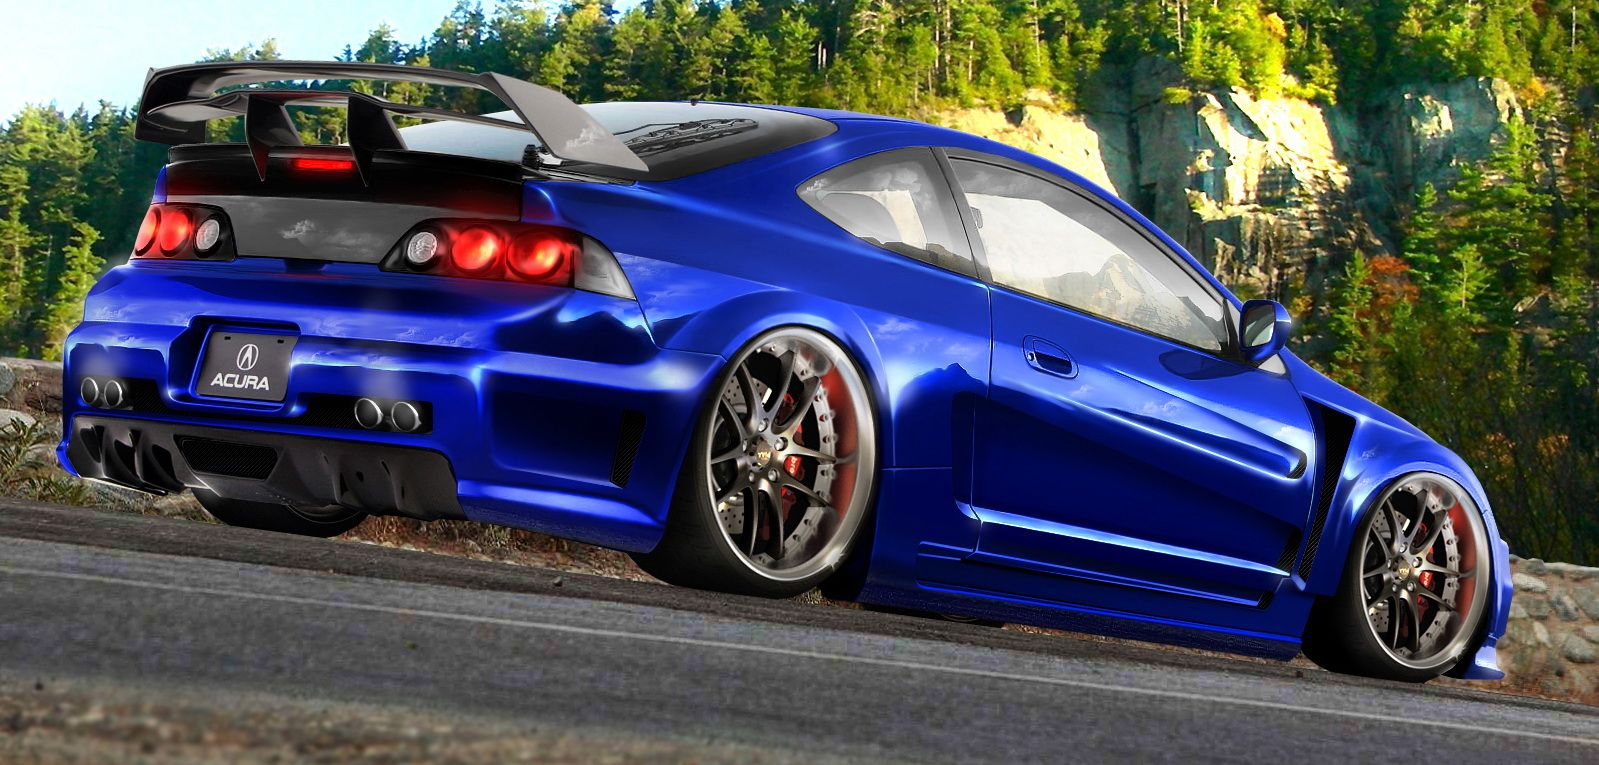 Acura Rsx Wallpapers Top Free Acura Rsx Backgrounds